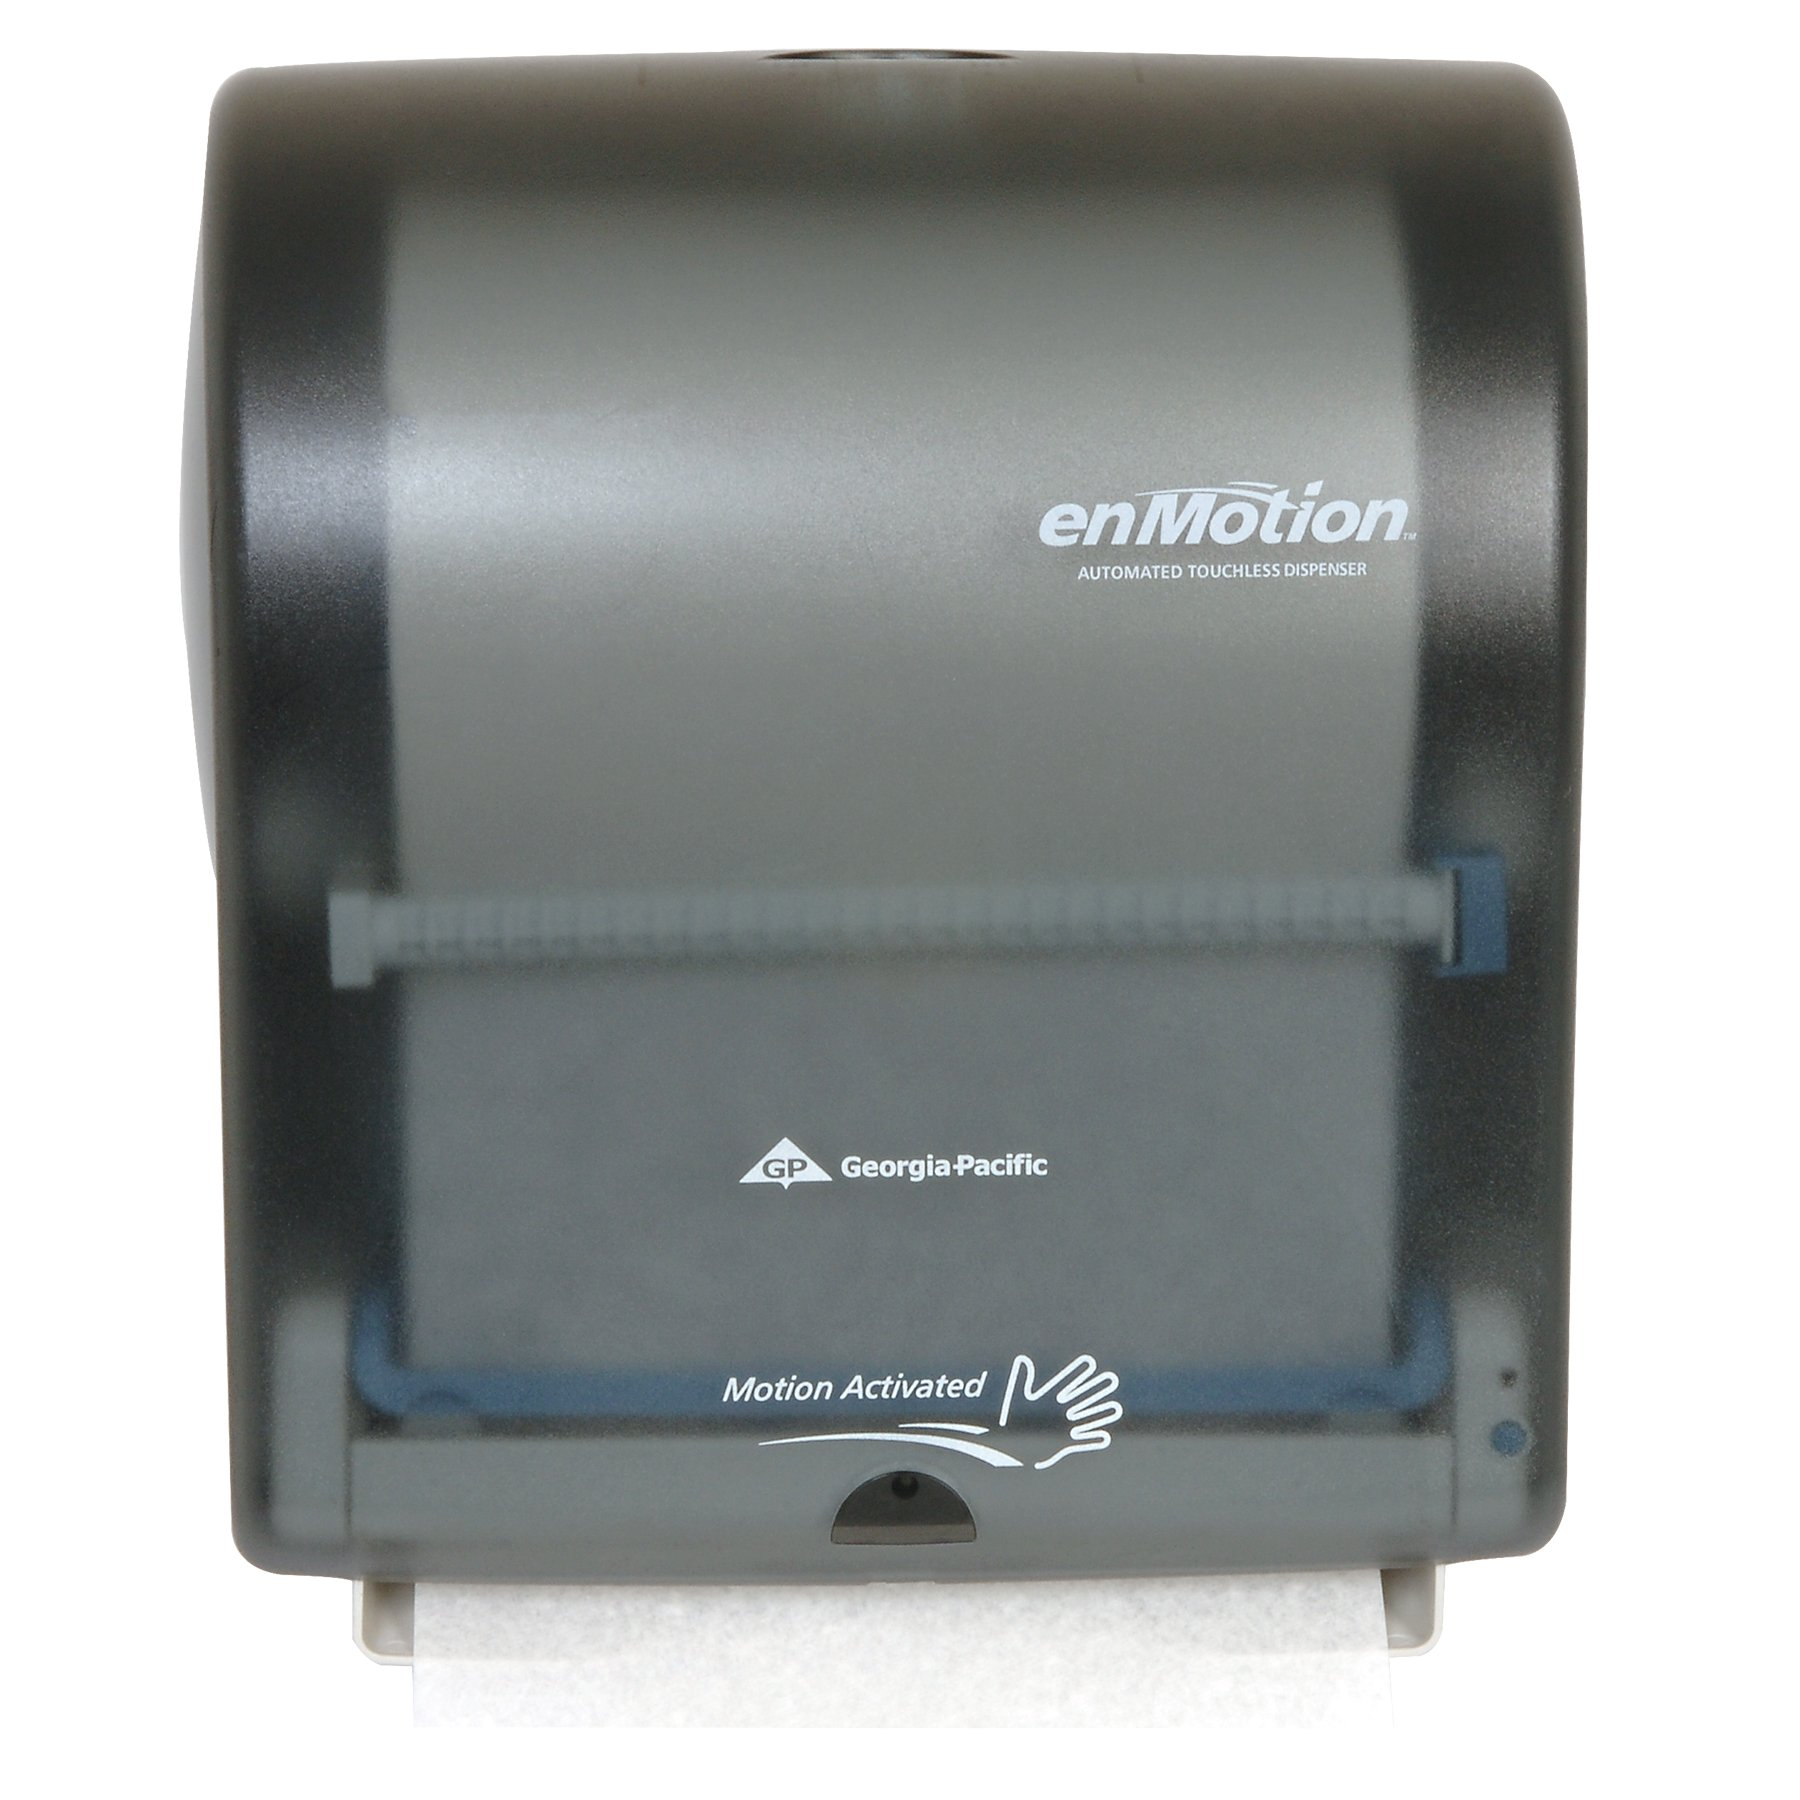 Georgia-Pacific enMotion 594-62 14.8'' Width x 16.75'' Height x 9.75'' Depth, Translucent Smoke Wall Mount Automated Touchless Towel Dispenser